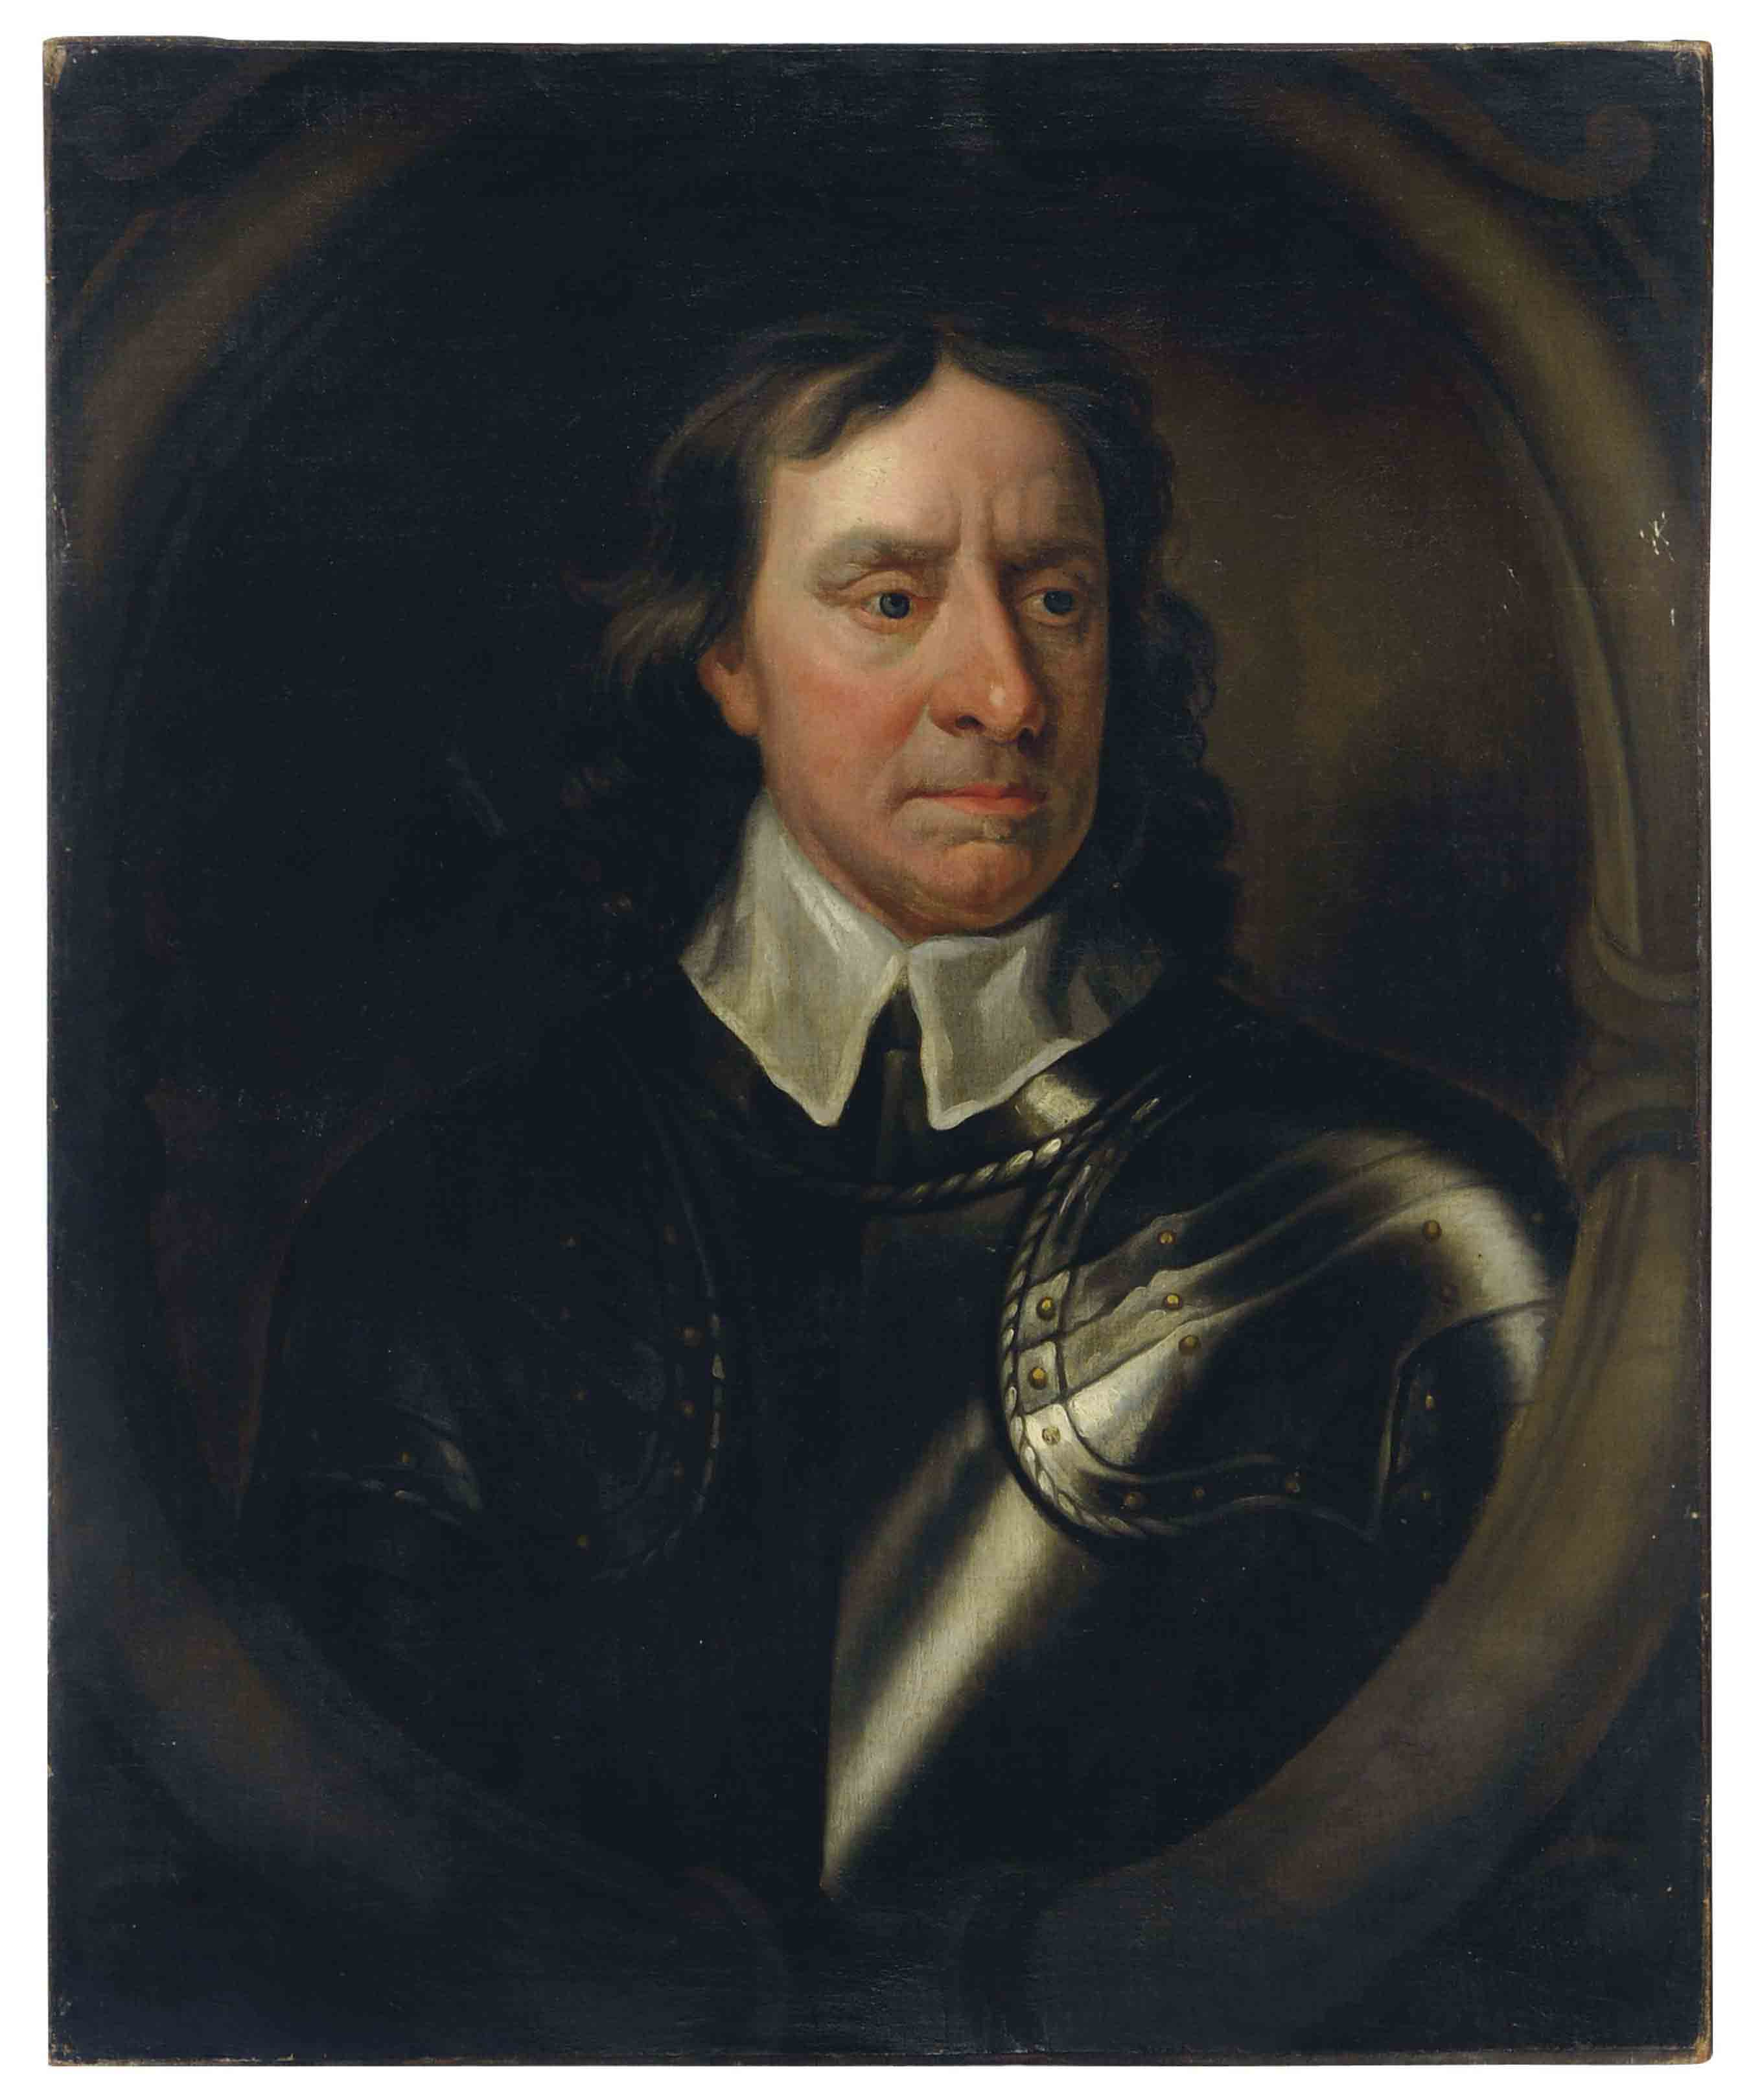 Portrait of Oliver Cromwell, in a painted oval